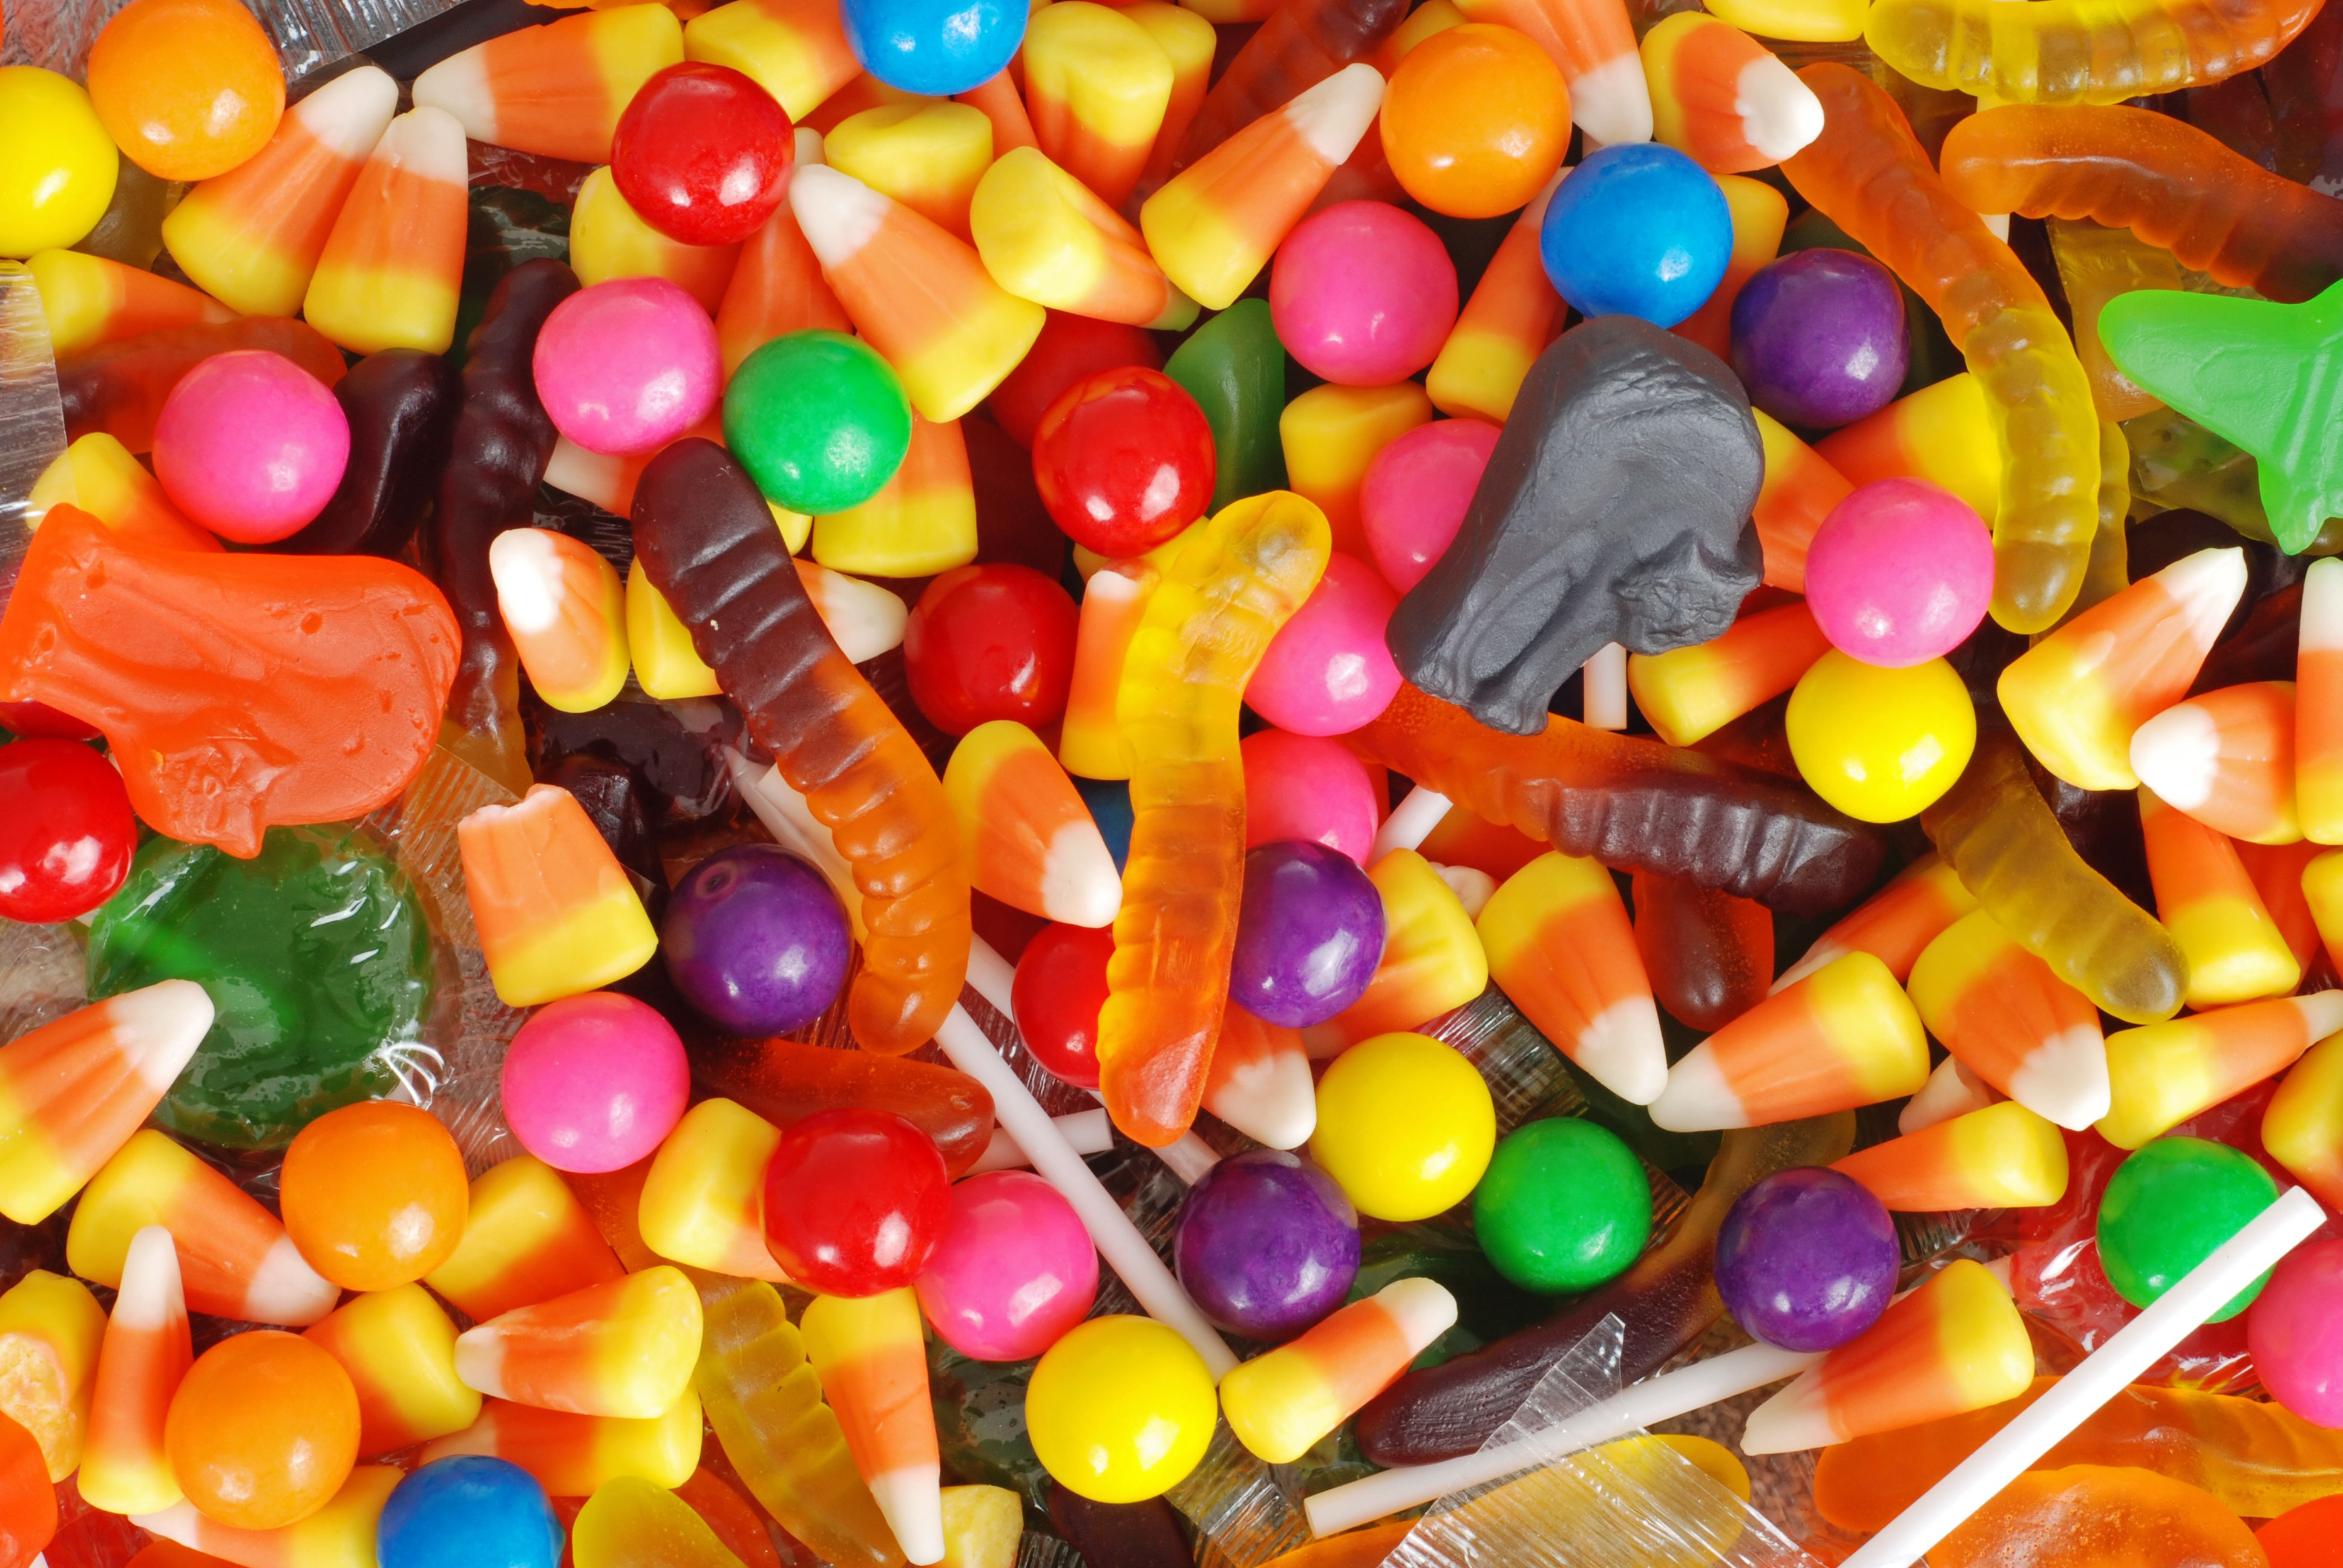 How to Choose Healthier Halloween Candy This Year